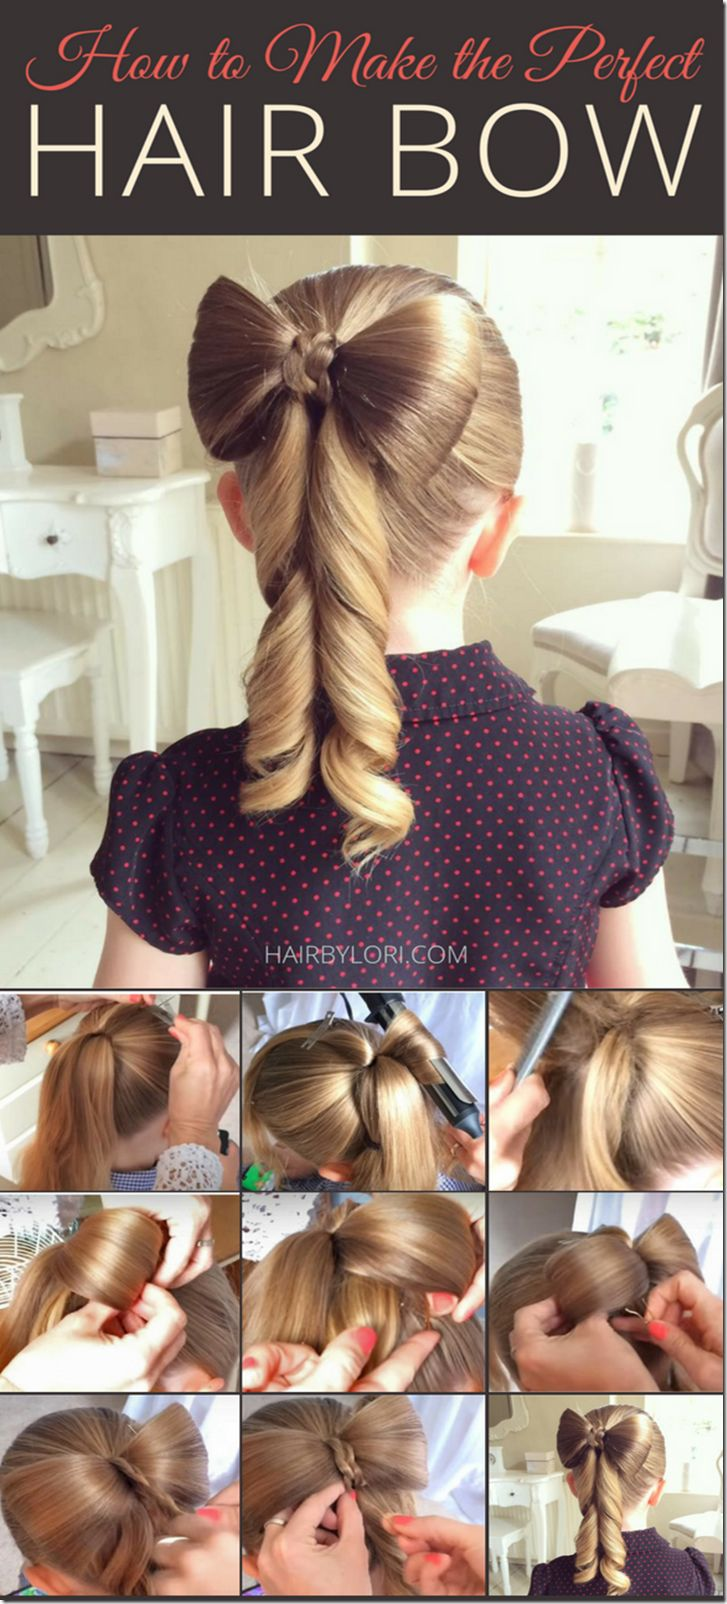 Step by step - how to make the perfect hair bow hairstyle for girls